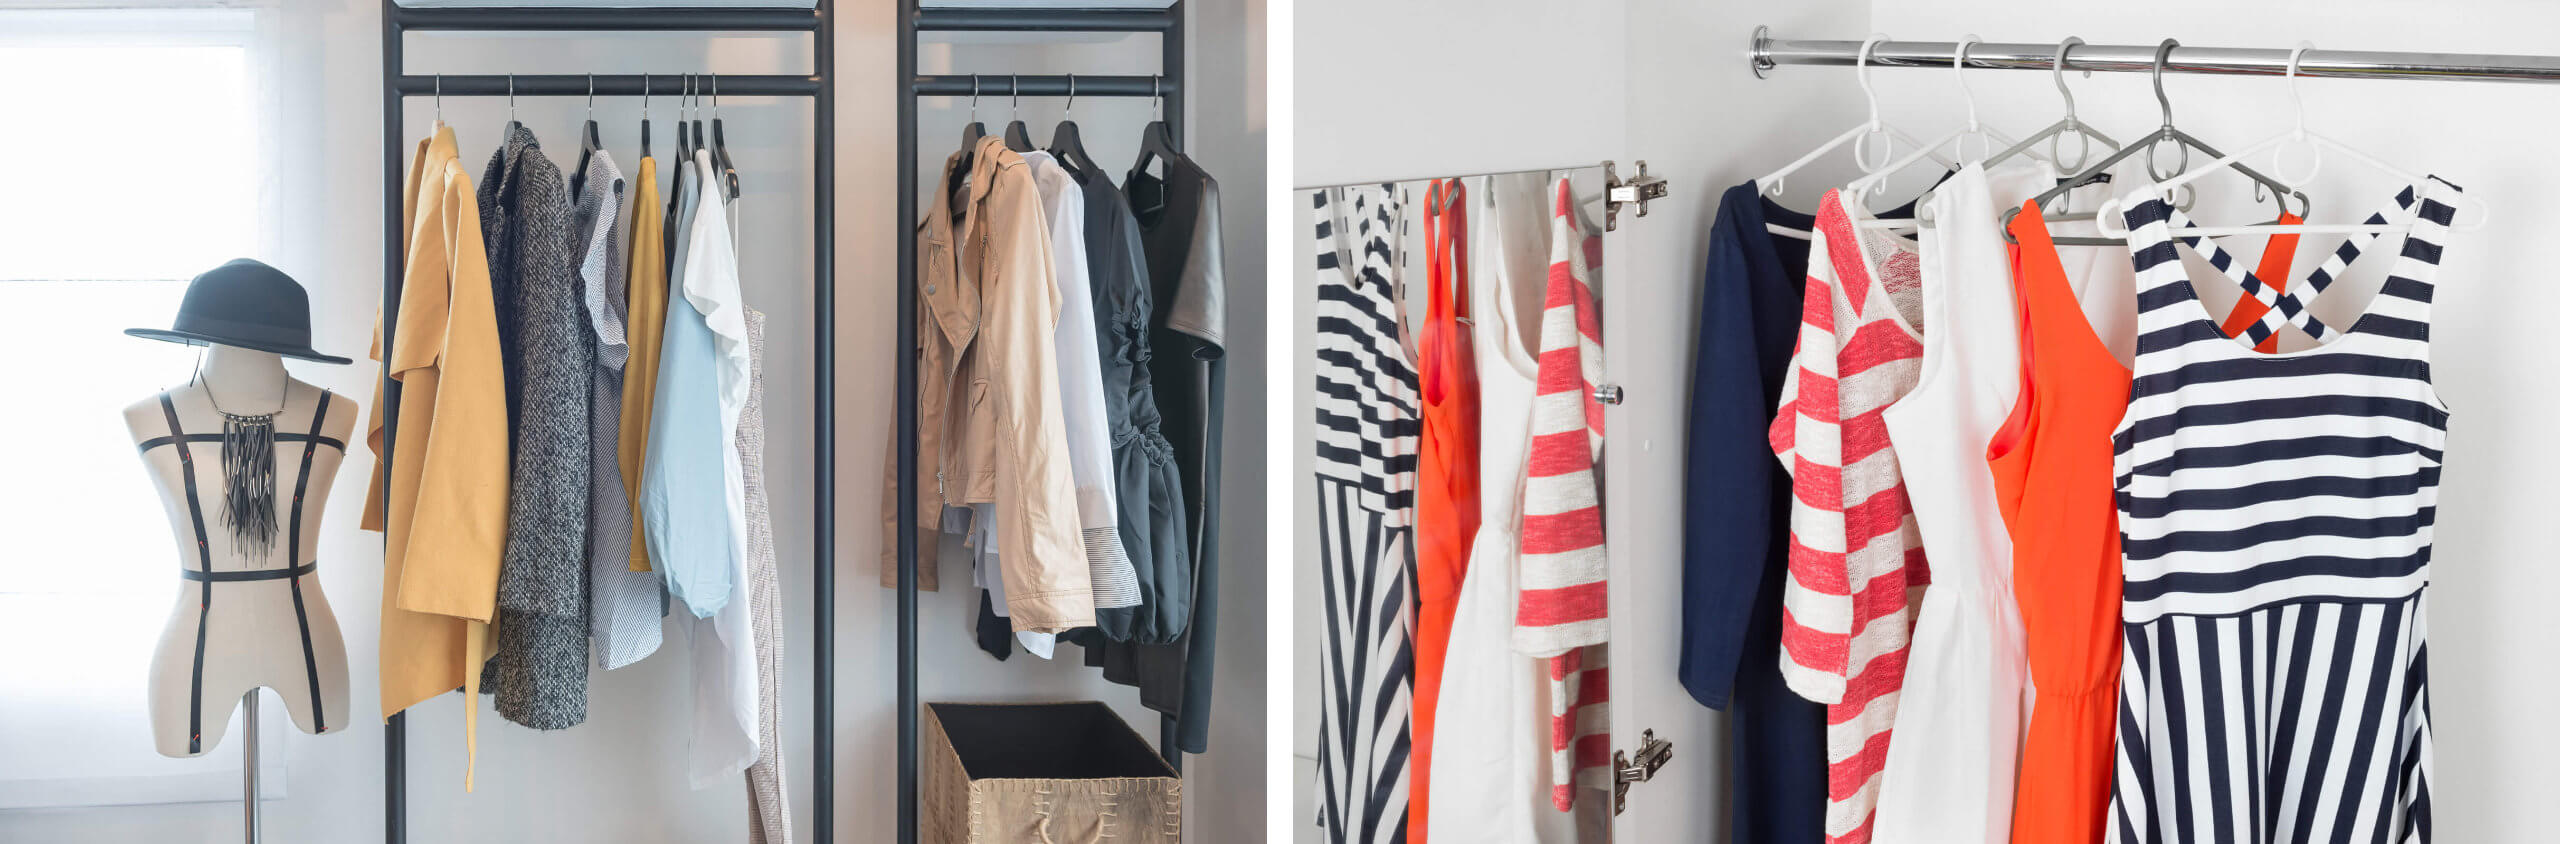 High-Quality Colourful And Tonal Women's Clothing Hanging On Rails In A Shop